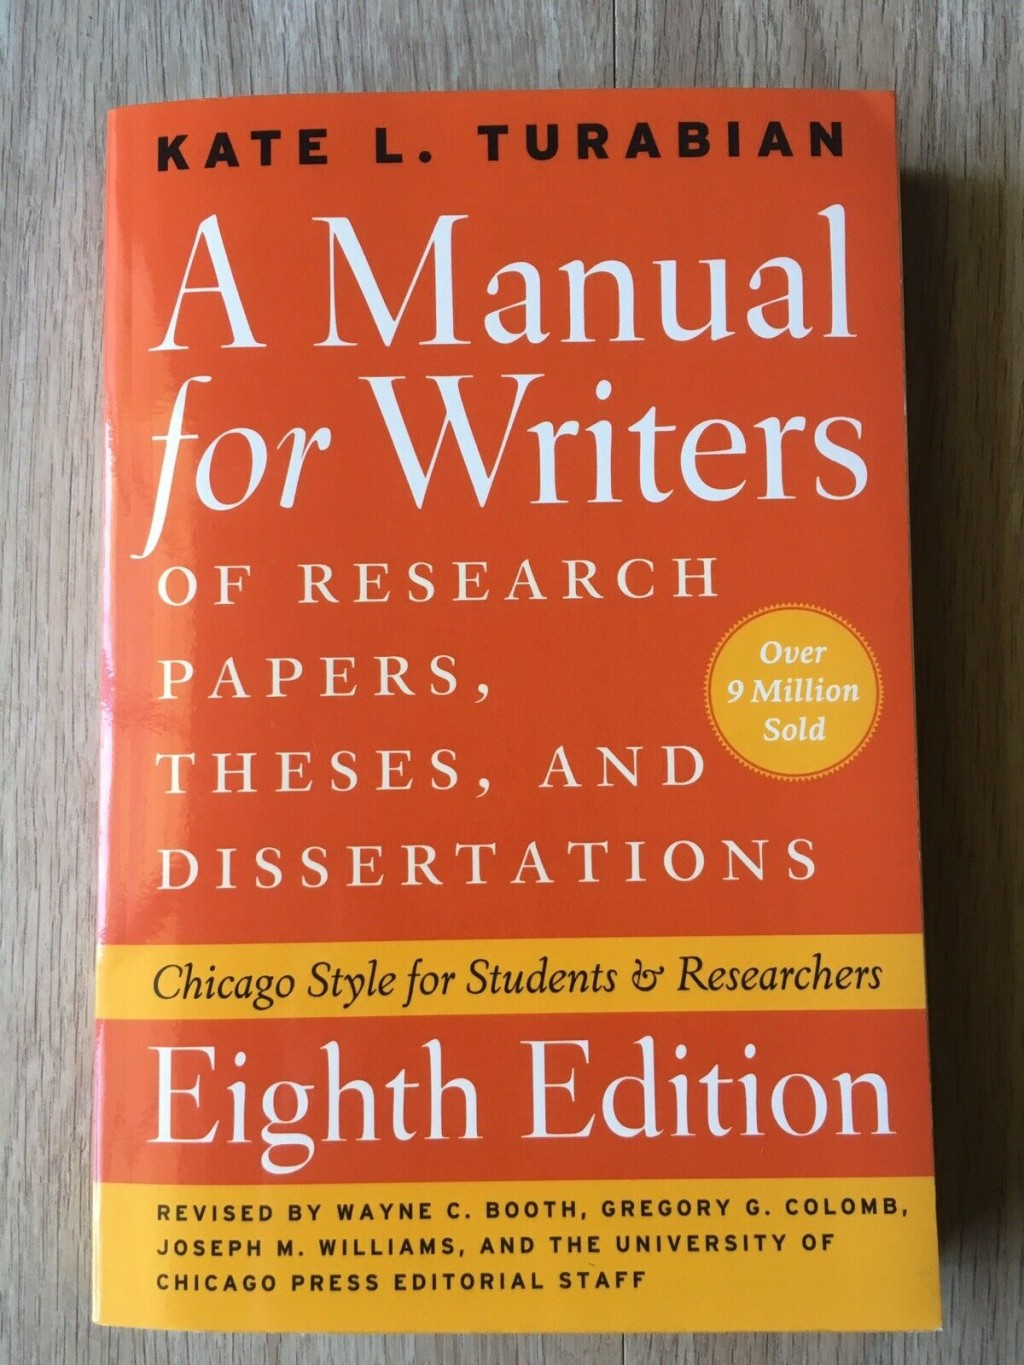 013 Manual For Writers Of Research Papers Theses And Dissertations Turabian Paper S Amazing A Pdf Large